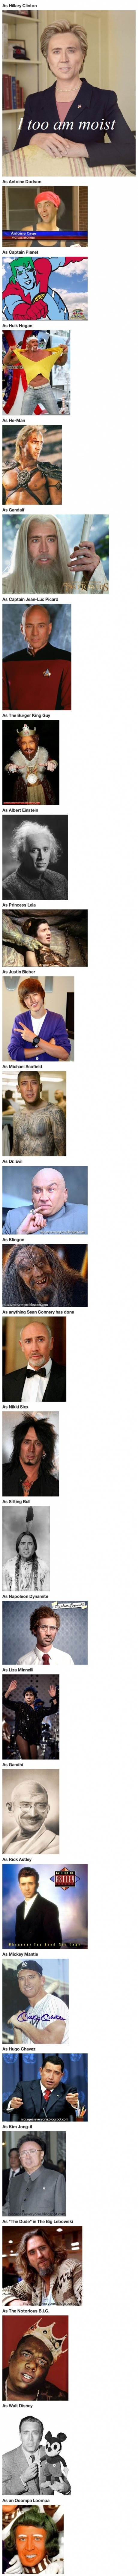 Nicolas Cage Can Be Anything